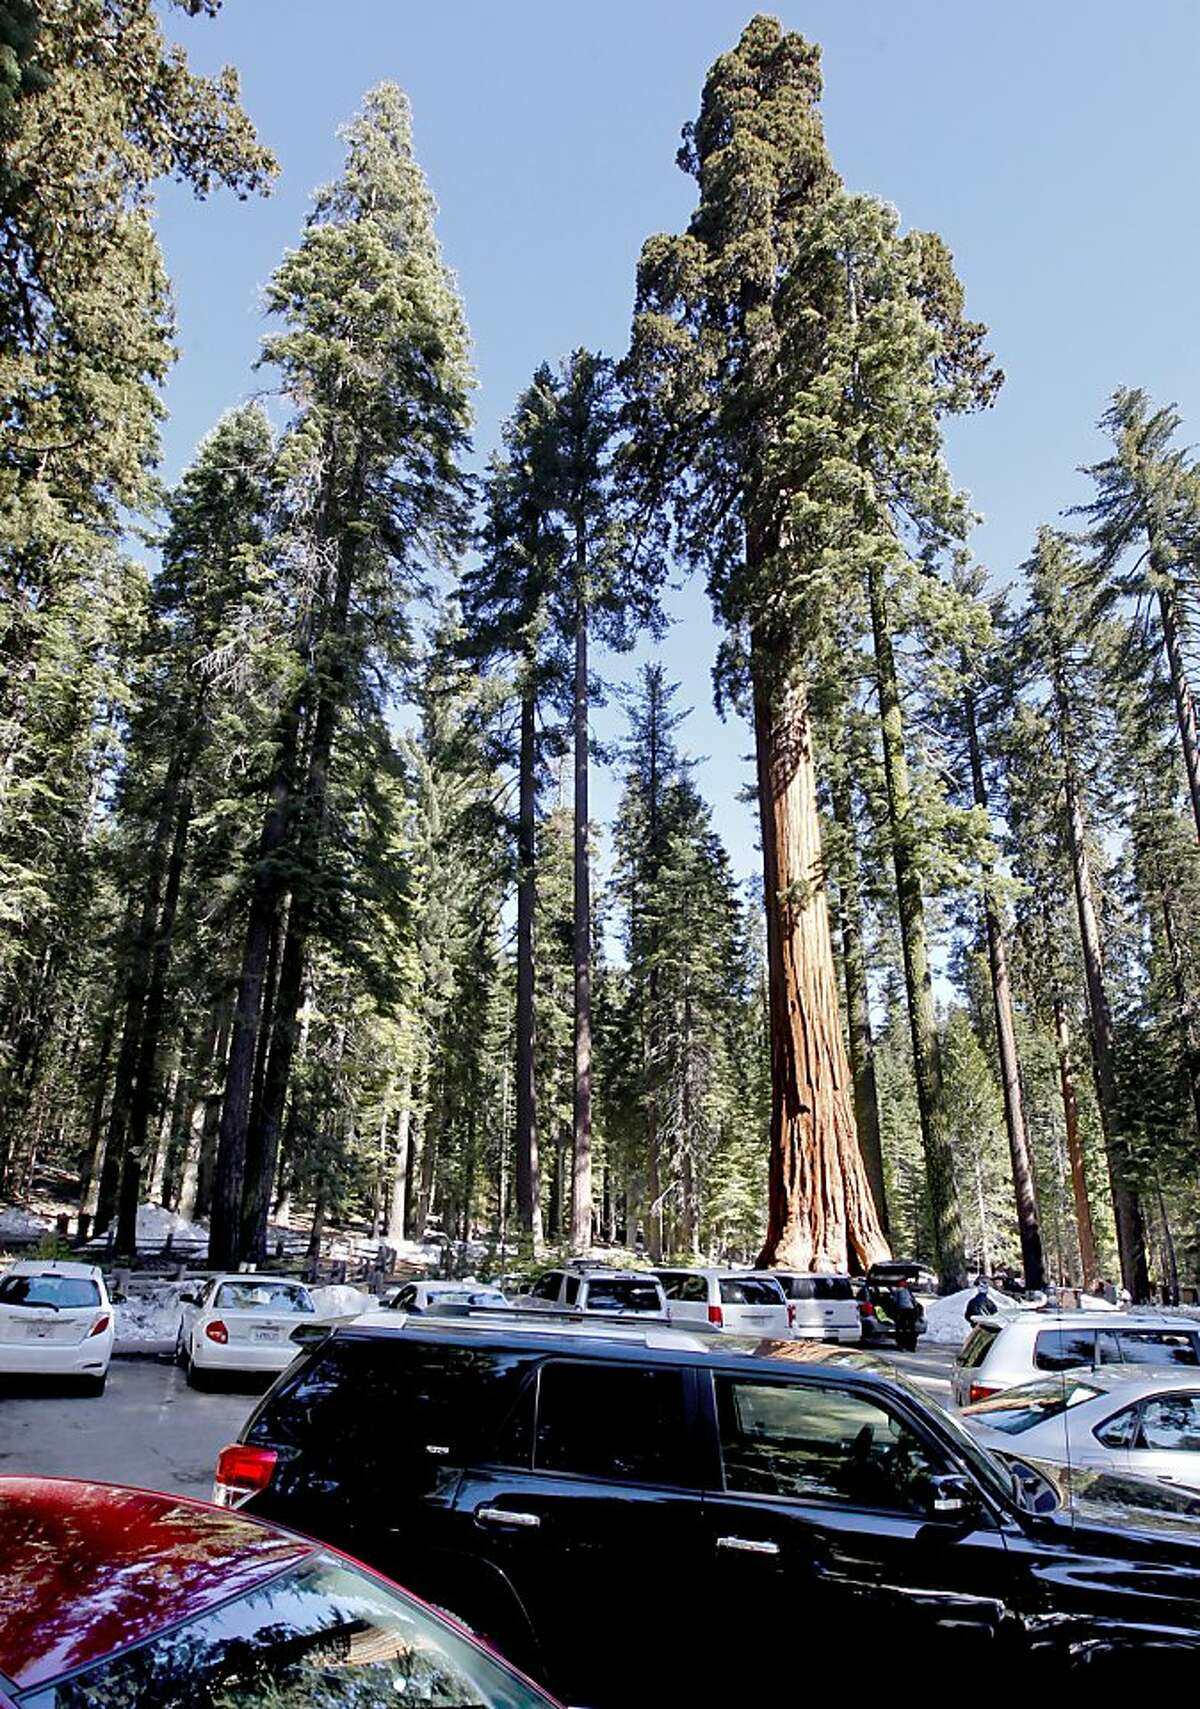 File - The Mariposa Grove of Giants Sequoias in Yosemite National Park as seen in 2013, prior to restoration.